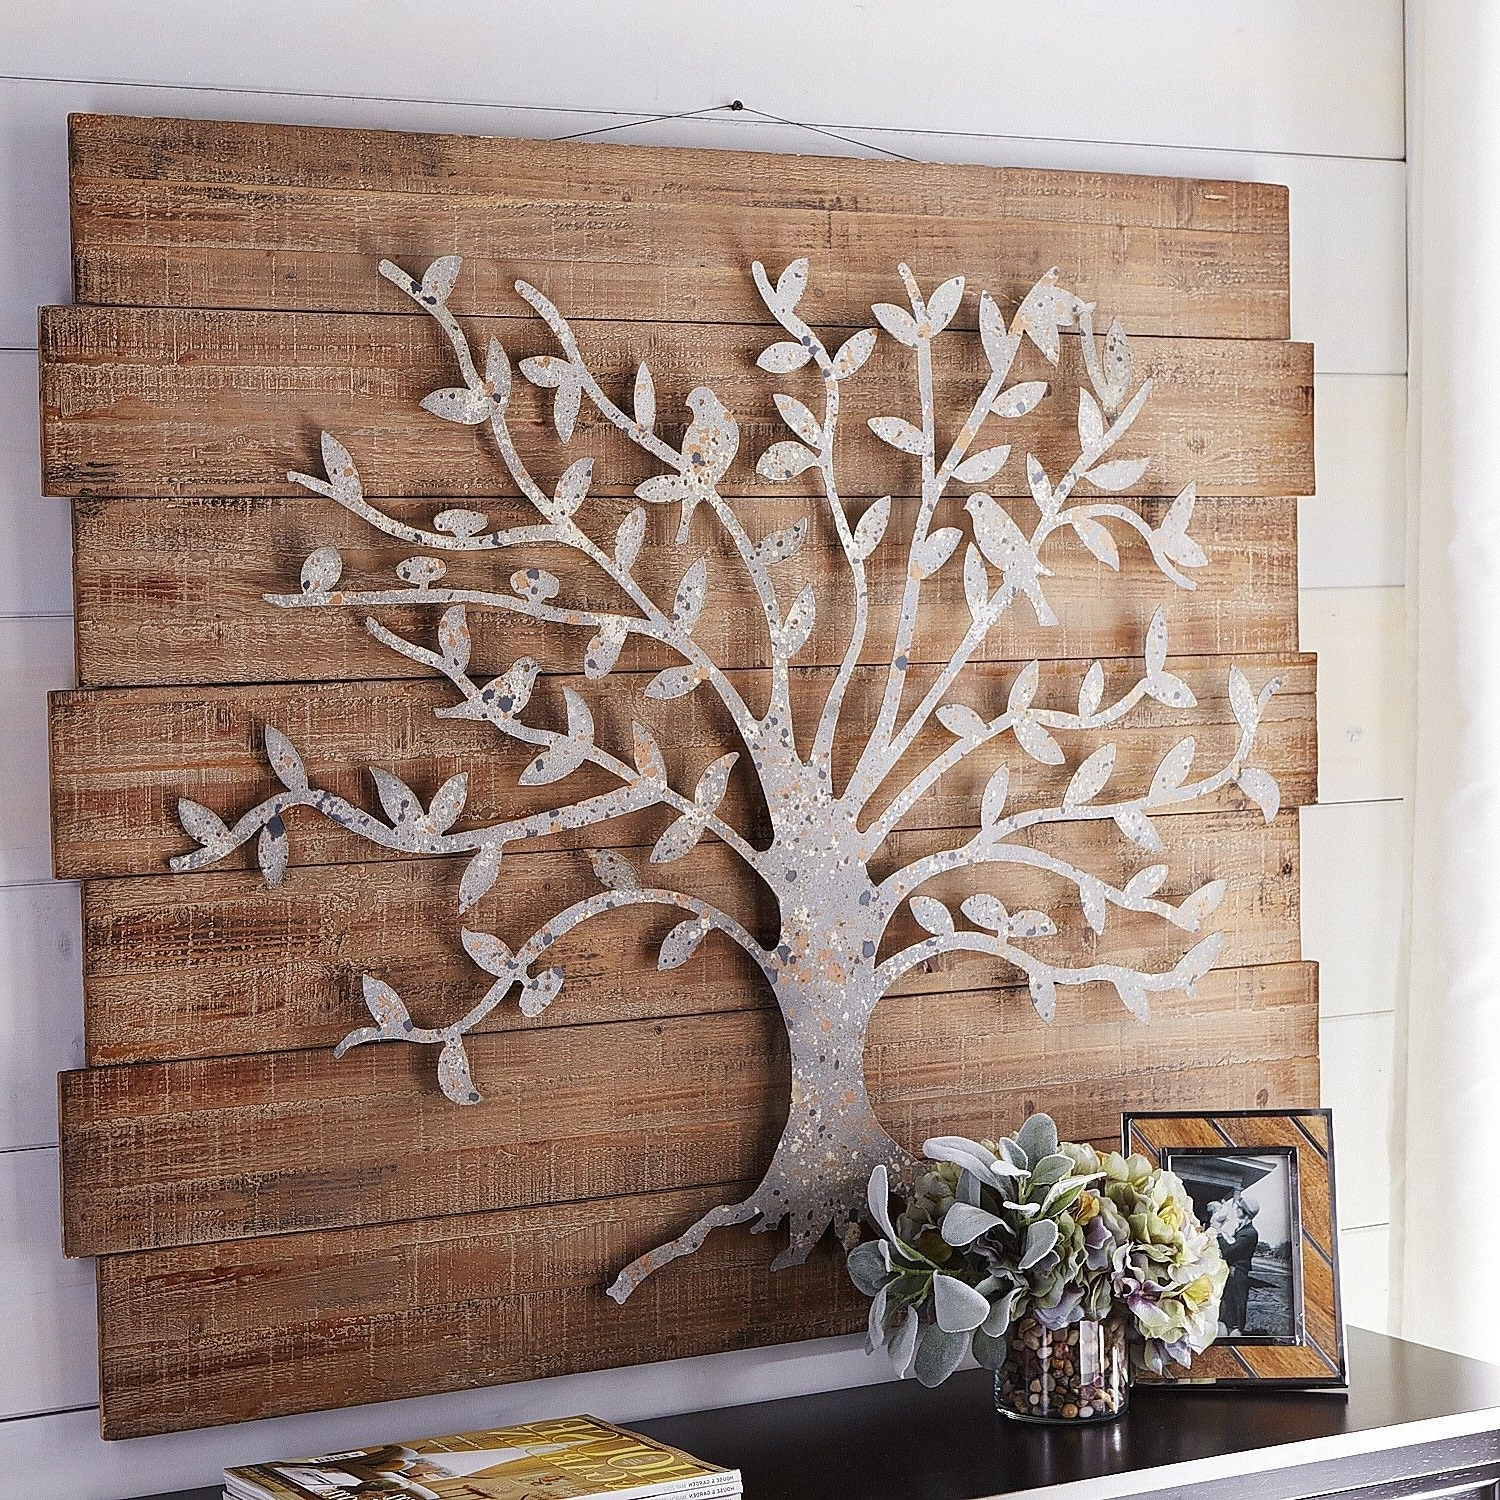 Pier 1 Imports Regarding Most Current Wood And Metal Wall Art (Gallery 16 of 20)